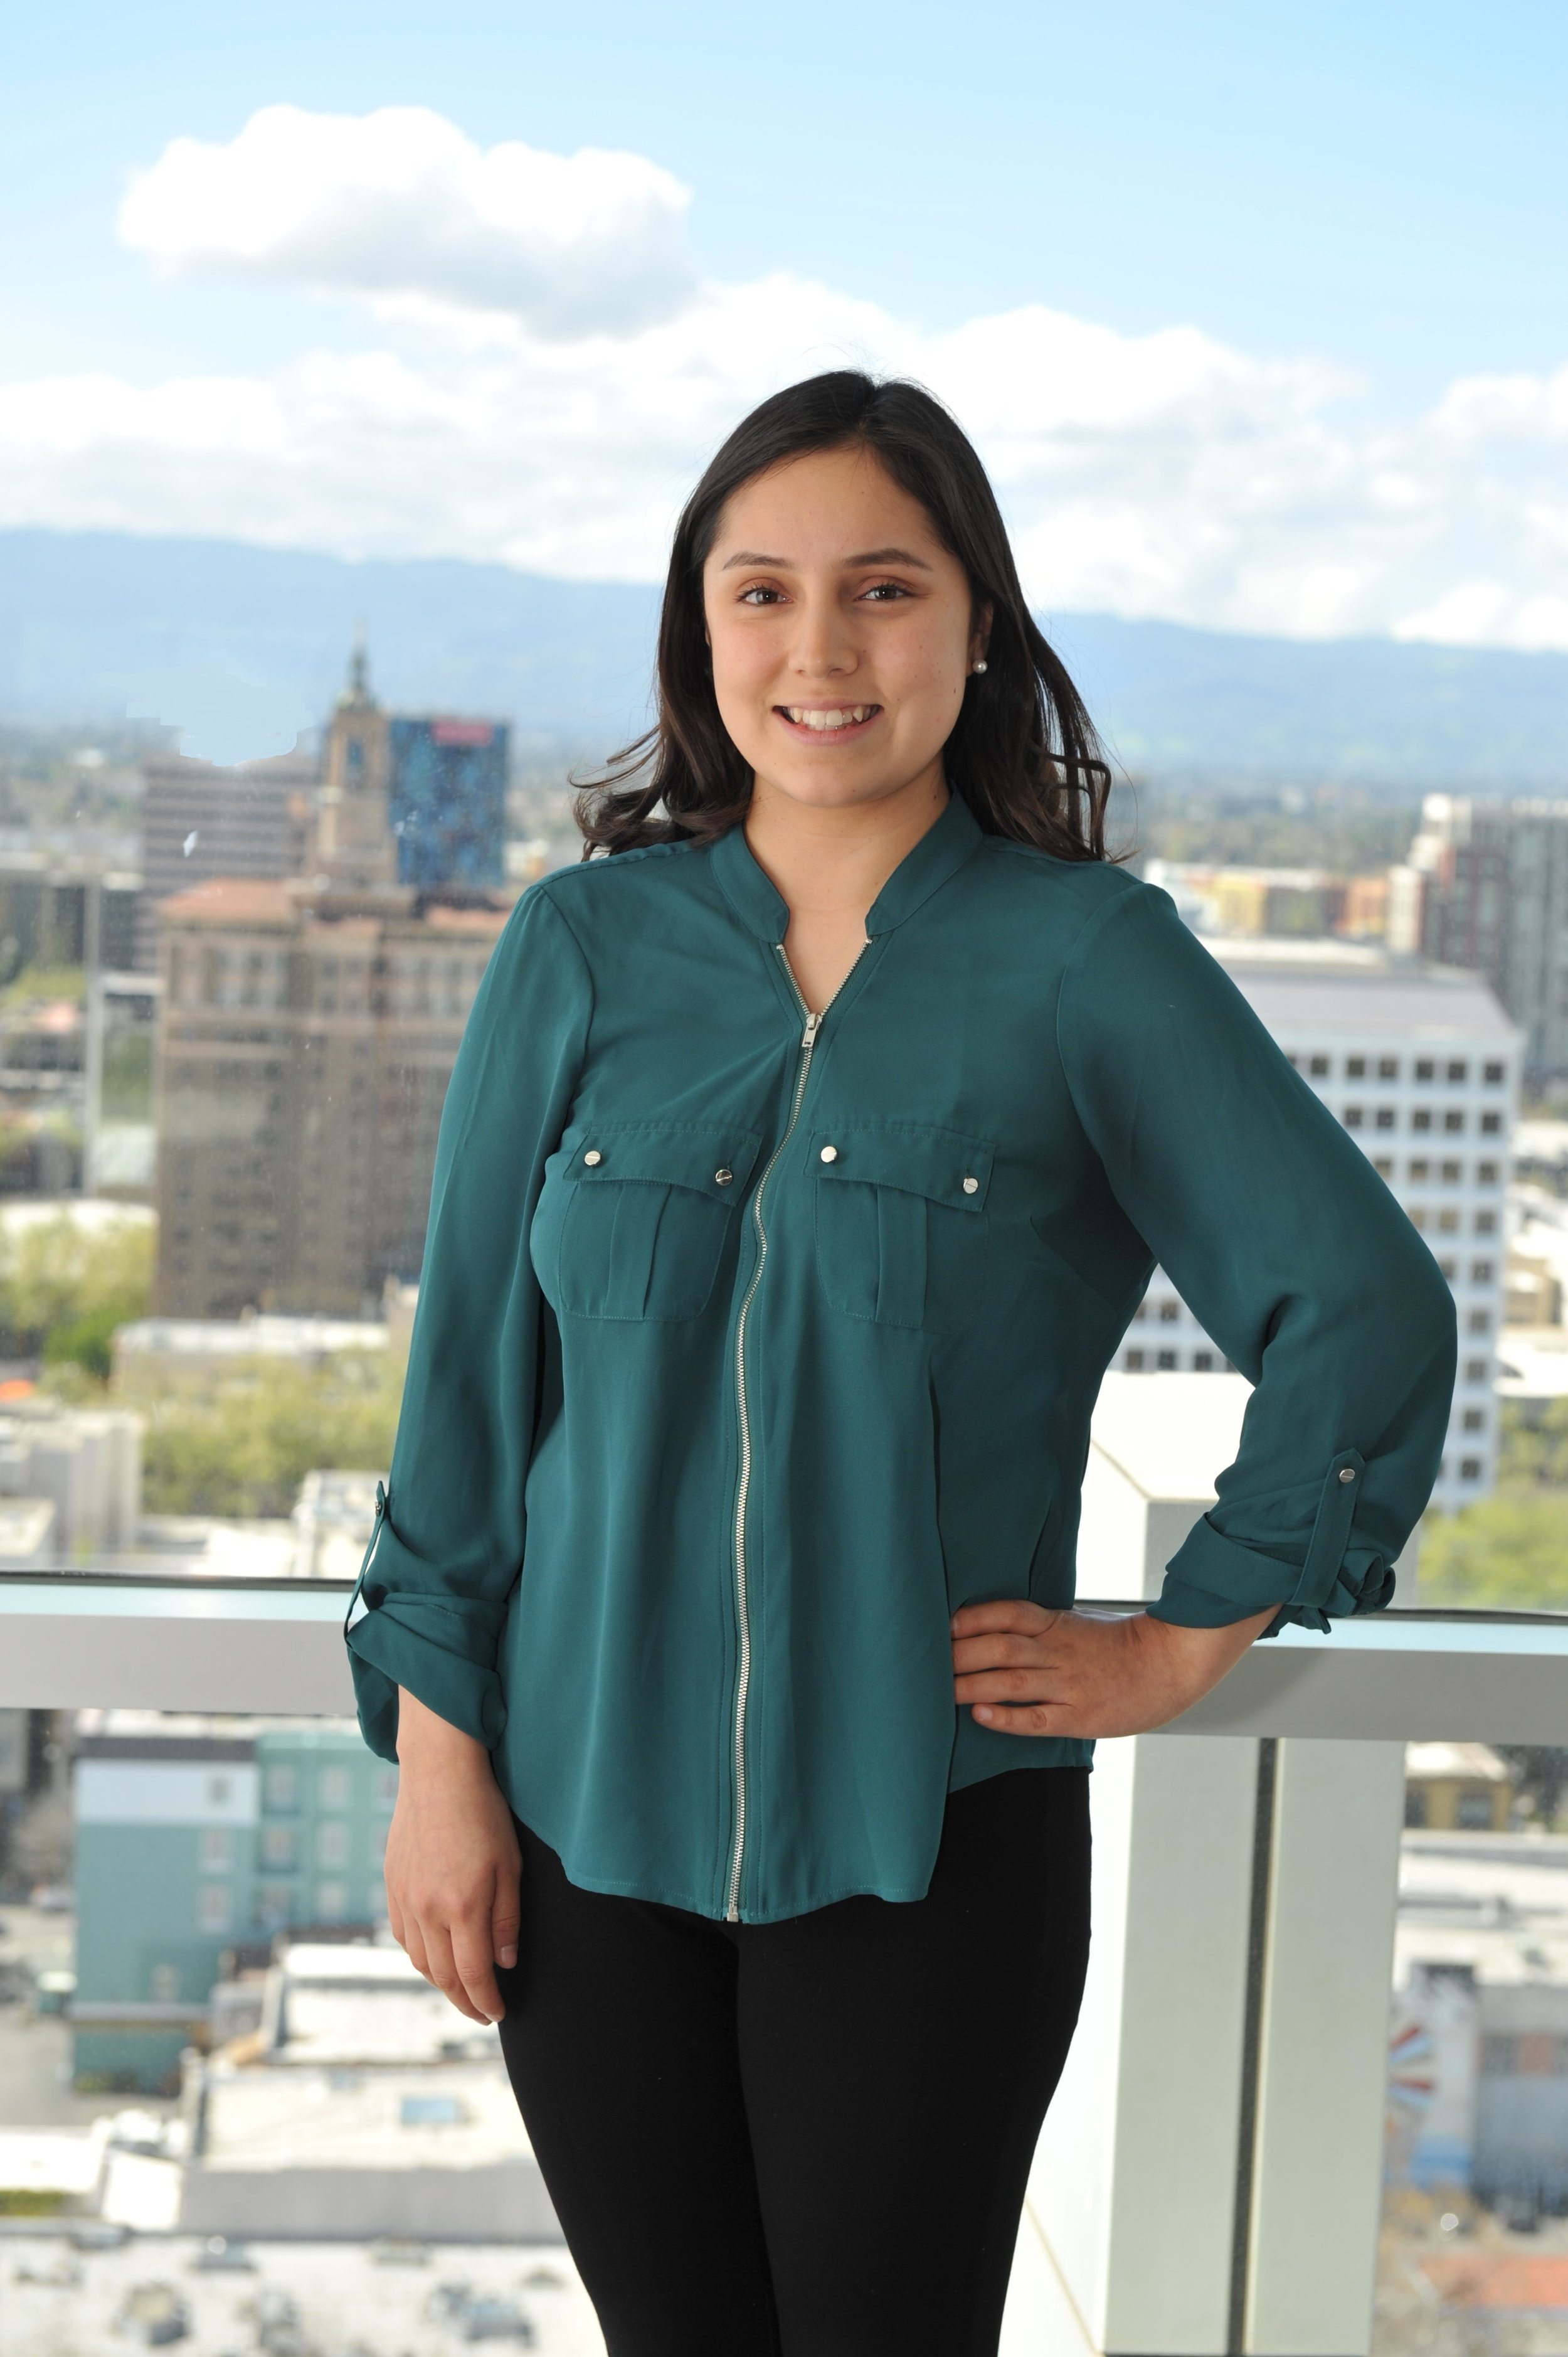 Diana Alanis: Intern   Assignments: Events, Proclamations, Commendations, Research, Communications, Community Outreach    diana.alanis@sanjoseca.gov    About Diana